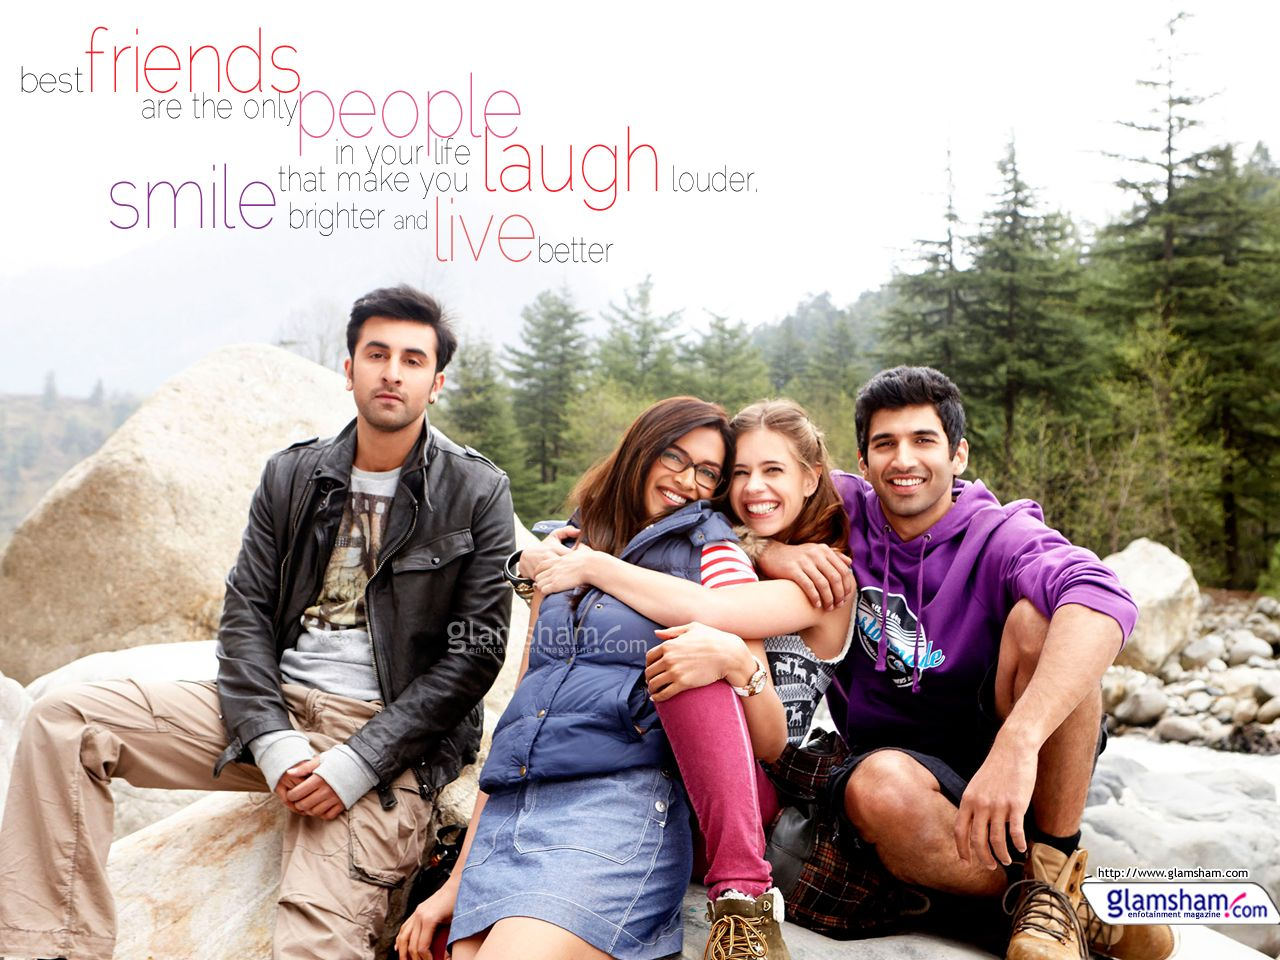 Friendship Quotes Google Search Bollywood Movies Romantic Comedy Film Bollywood